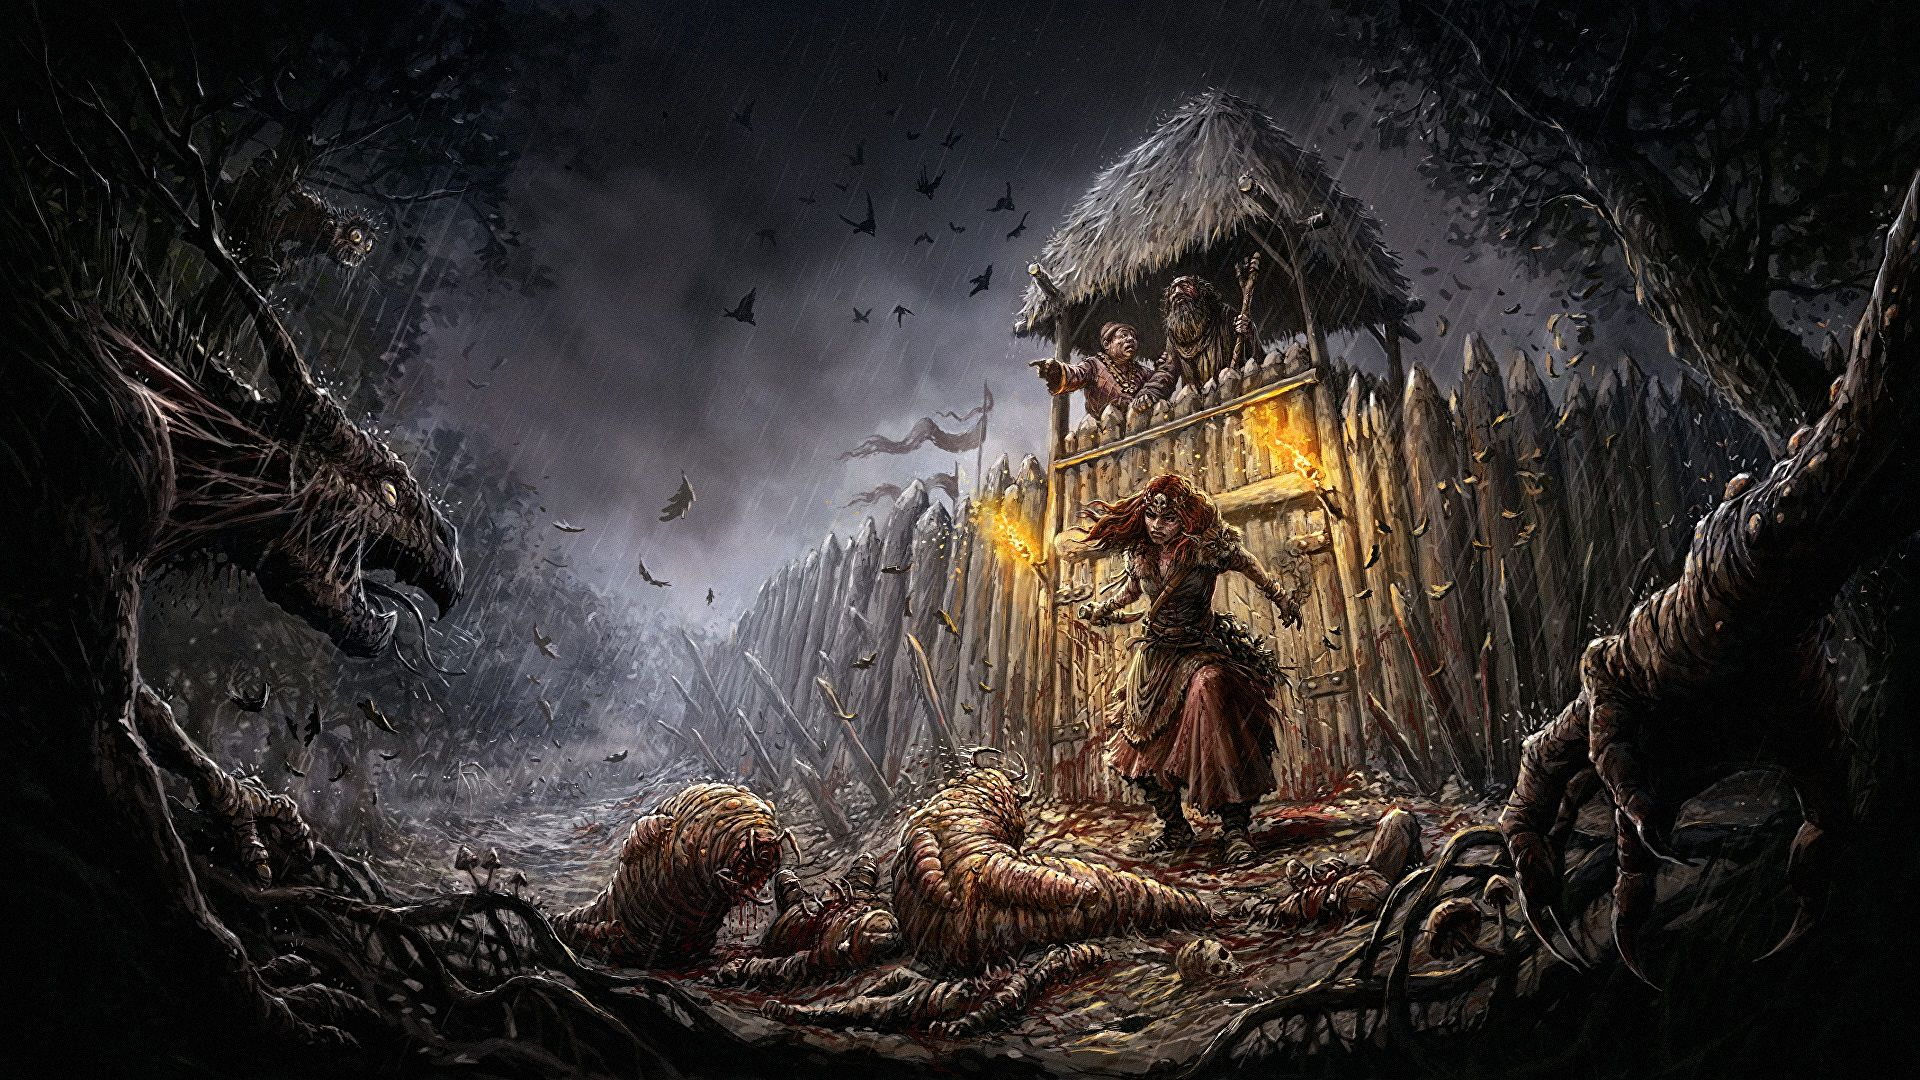 Gord is an upcoming dark fantasy strategy game inspired by grim Slavic folklore